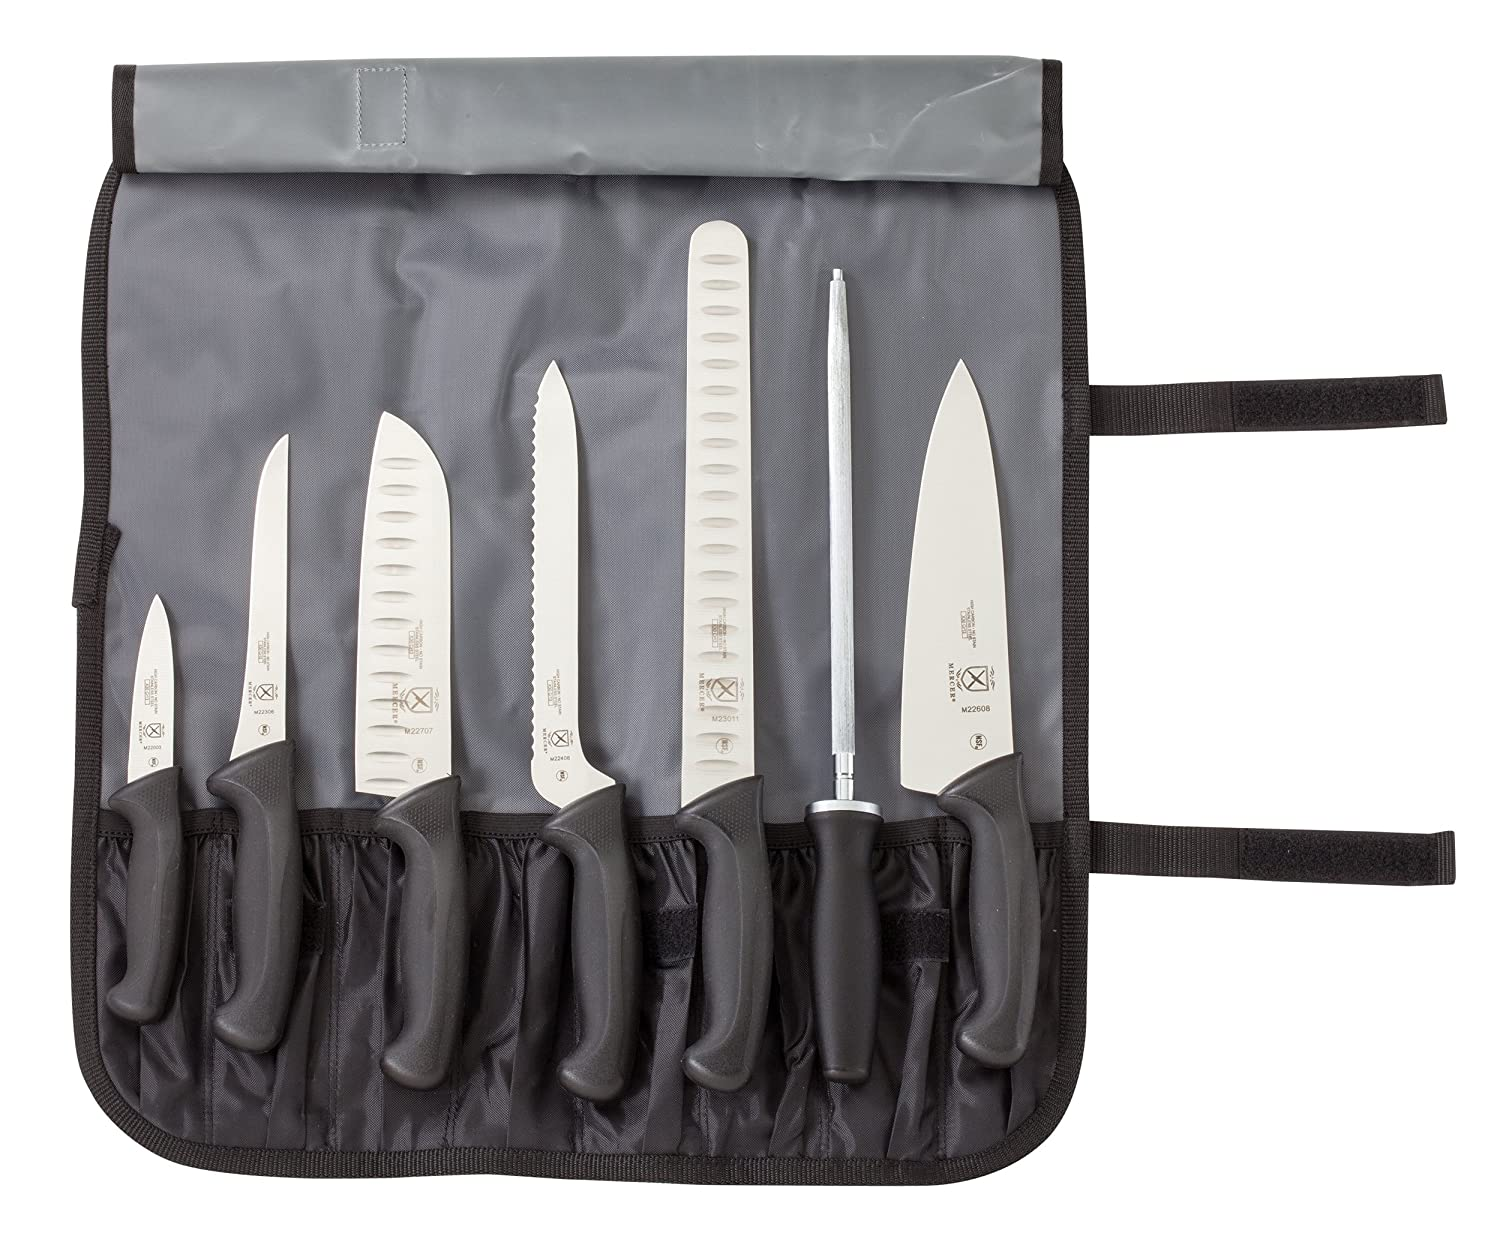 Mercer Culinary Millennia 8-Piece Knife Roll Set